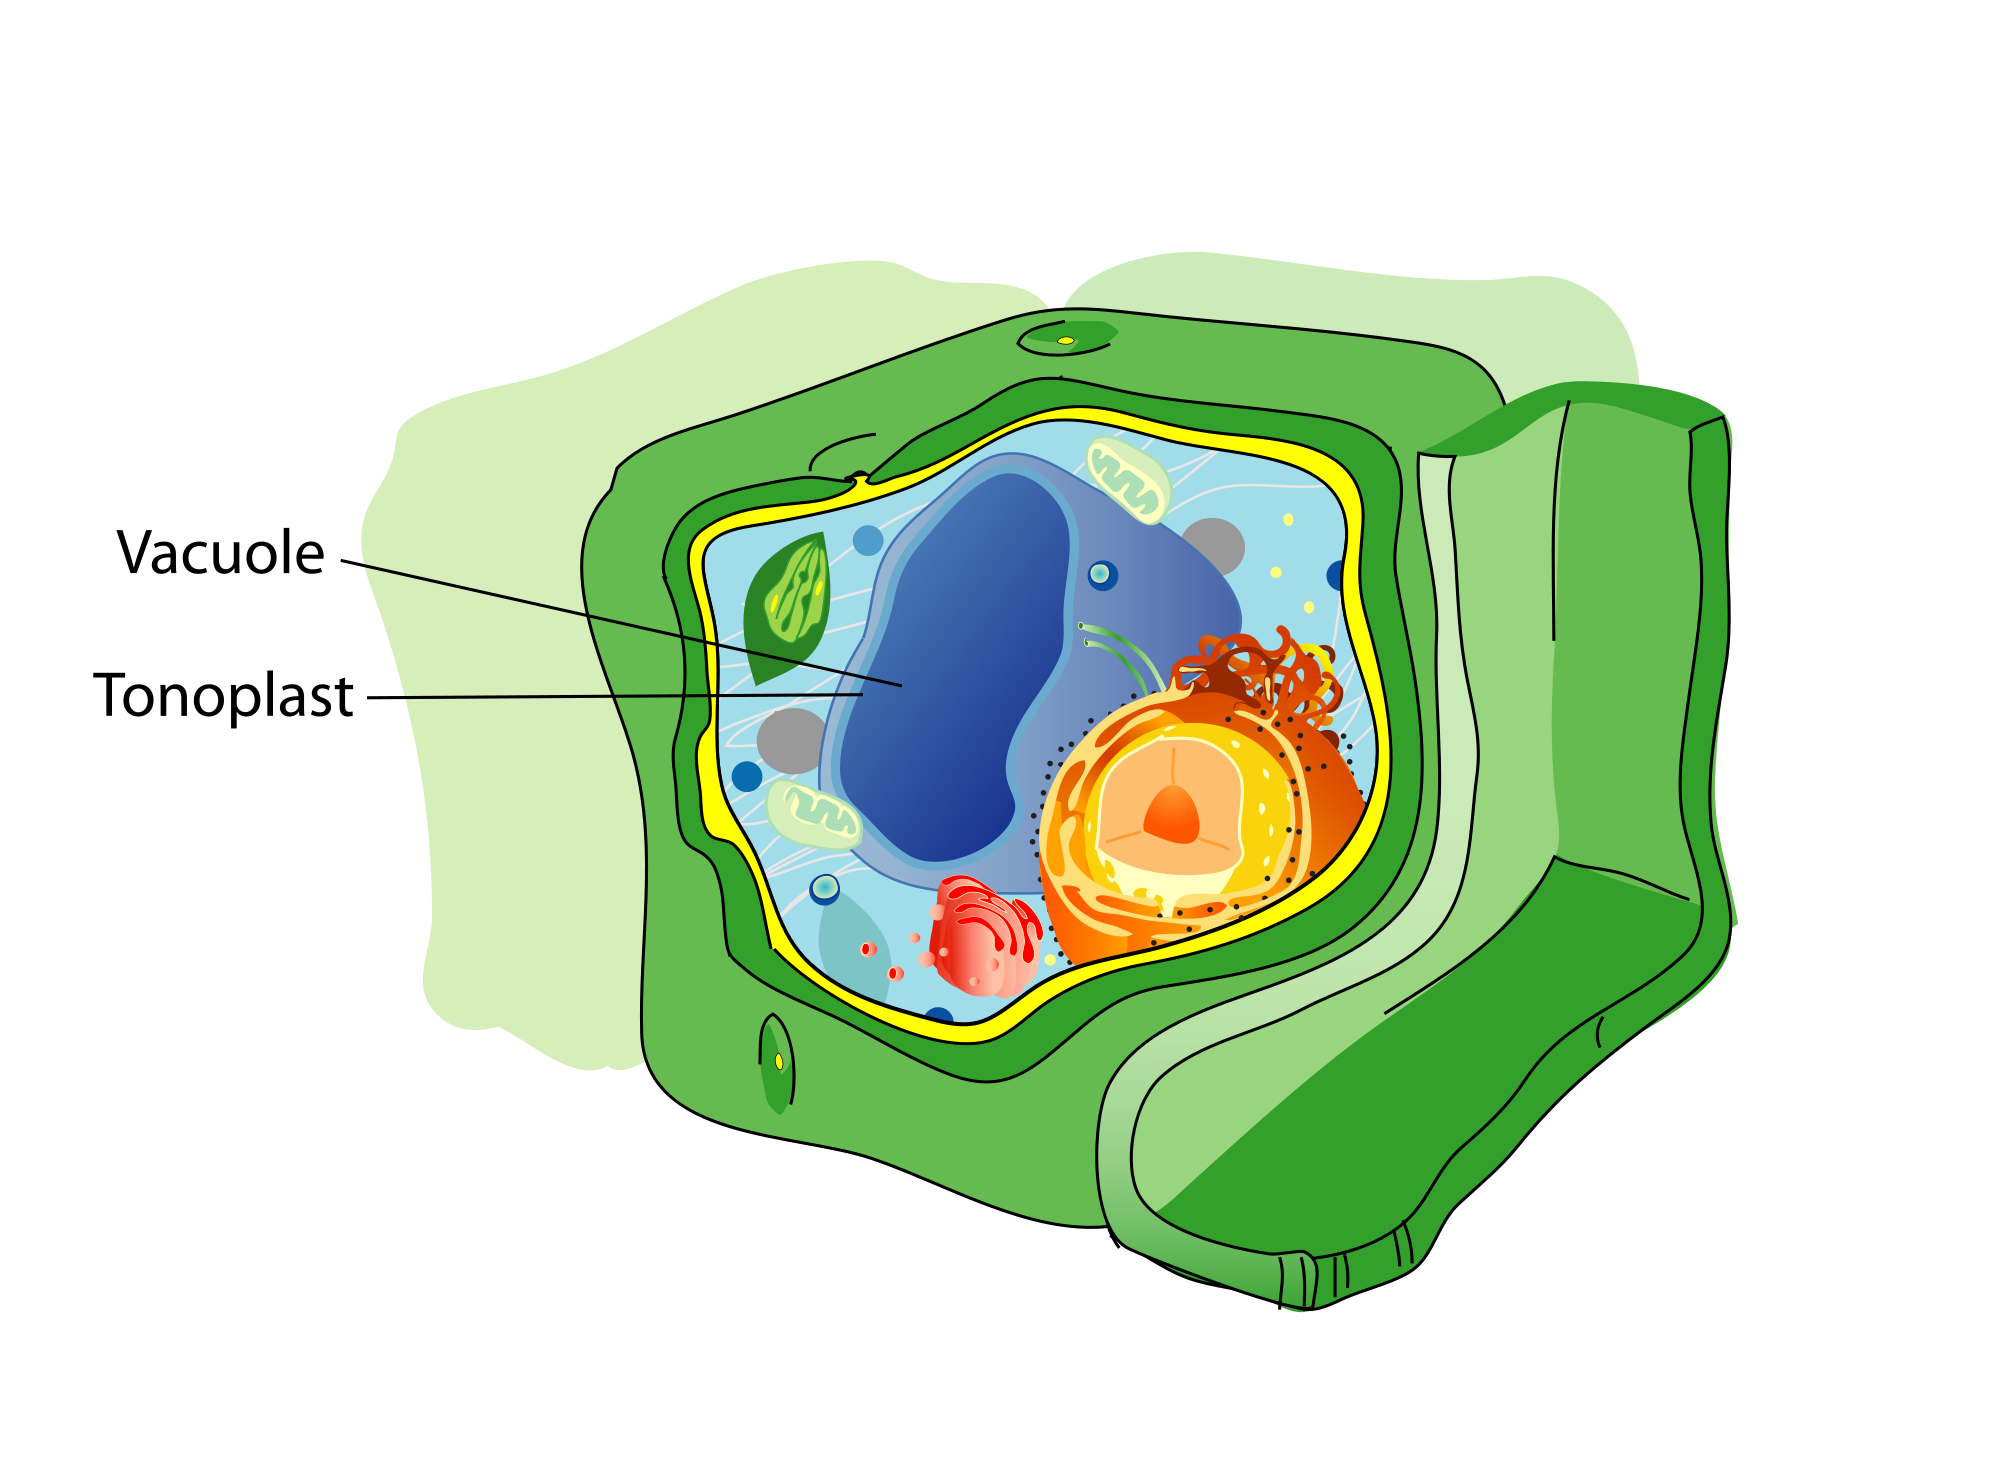 Vacuole wikipedia plant. Cell clipart cell structure